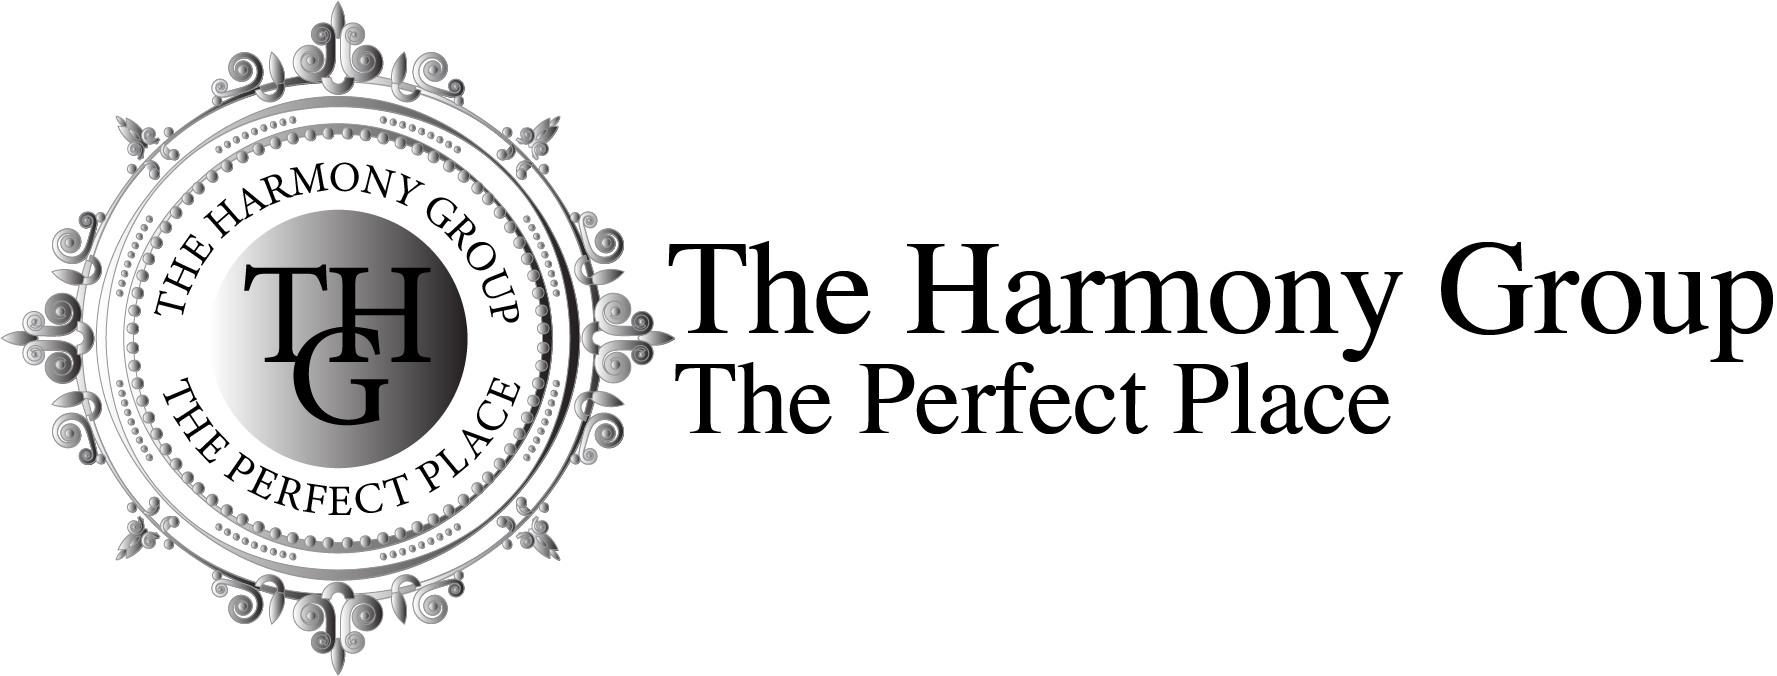 The Harmony Group